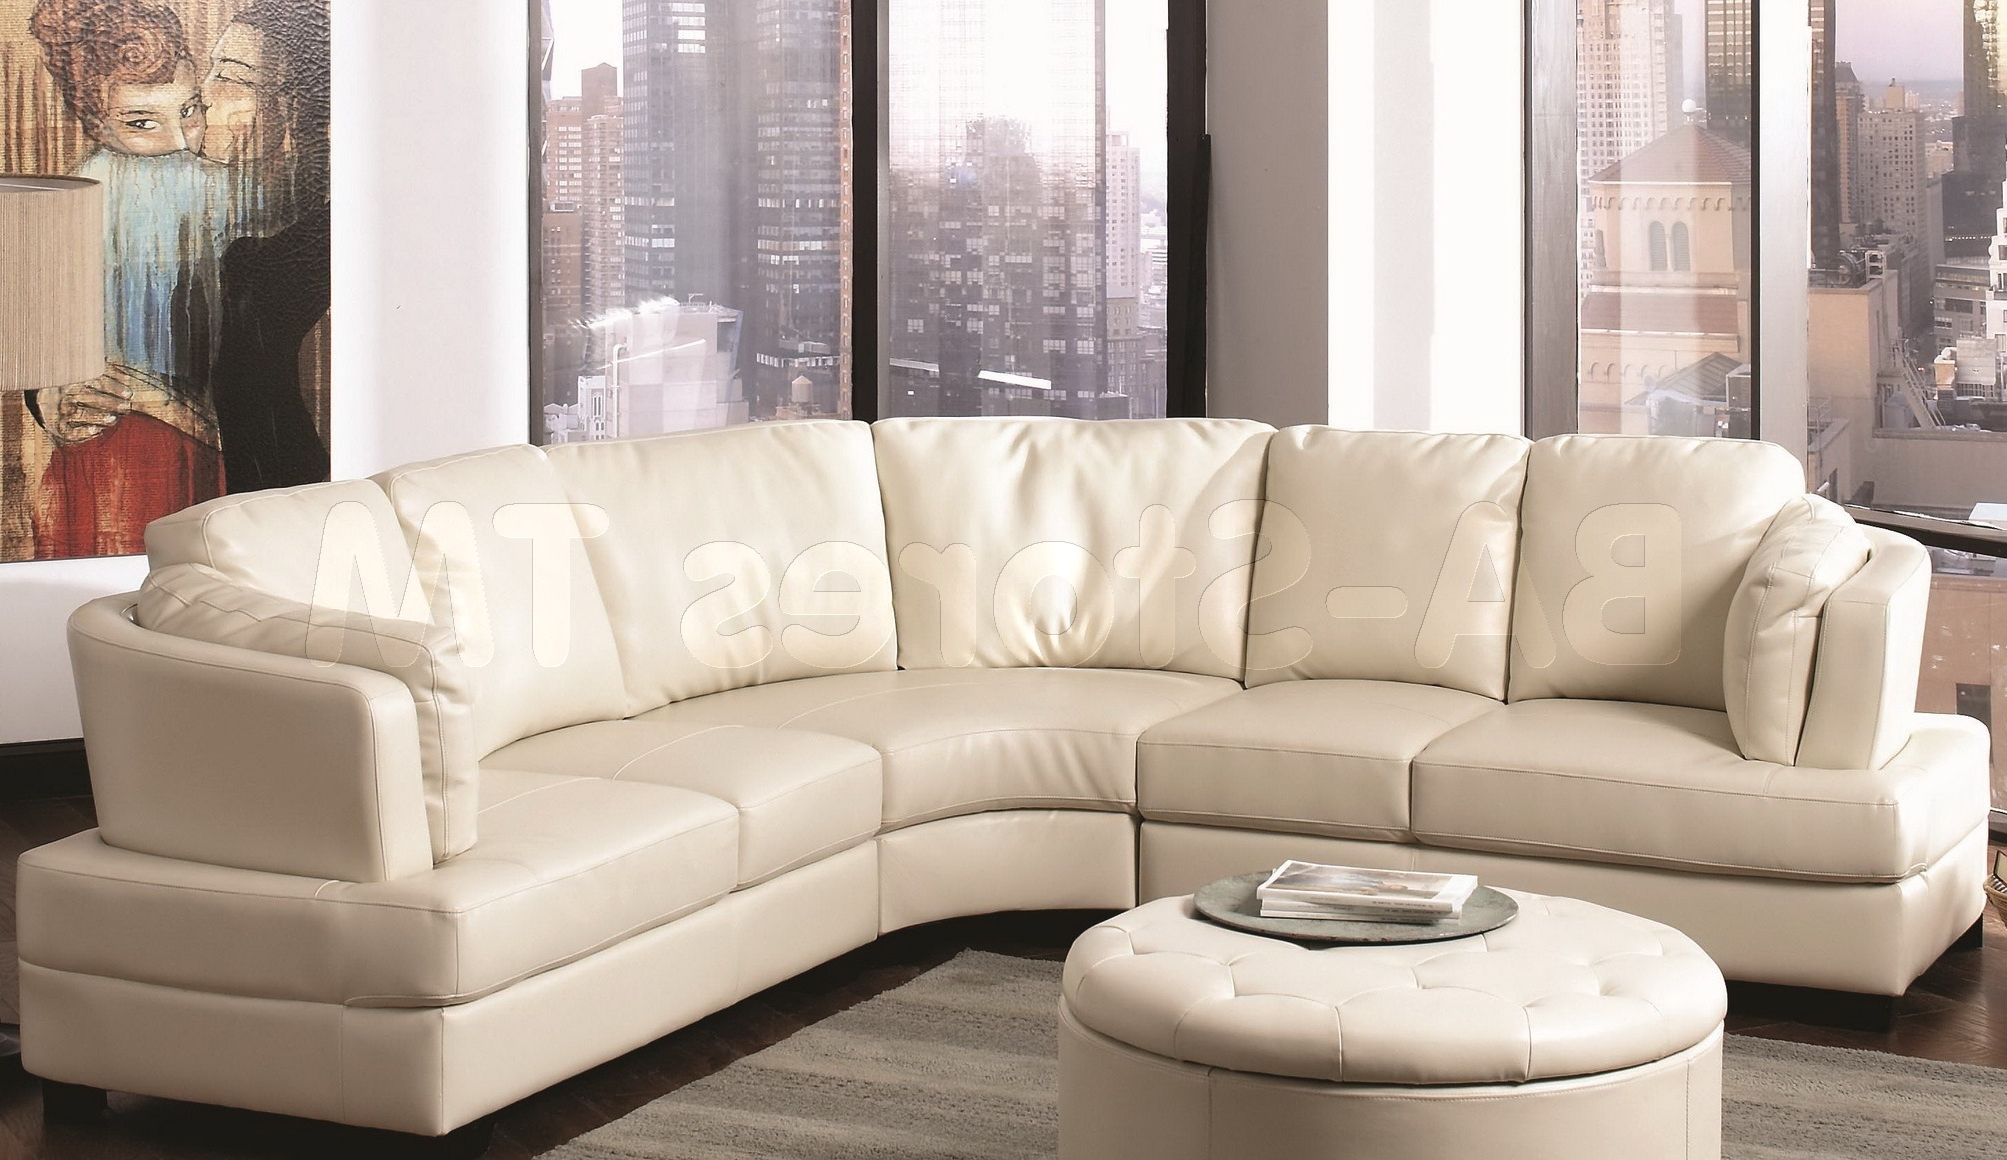 Newest Circular Sectional Sofas Intended For Curved Sectional Sofa (View 17 of 20)